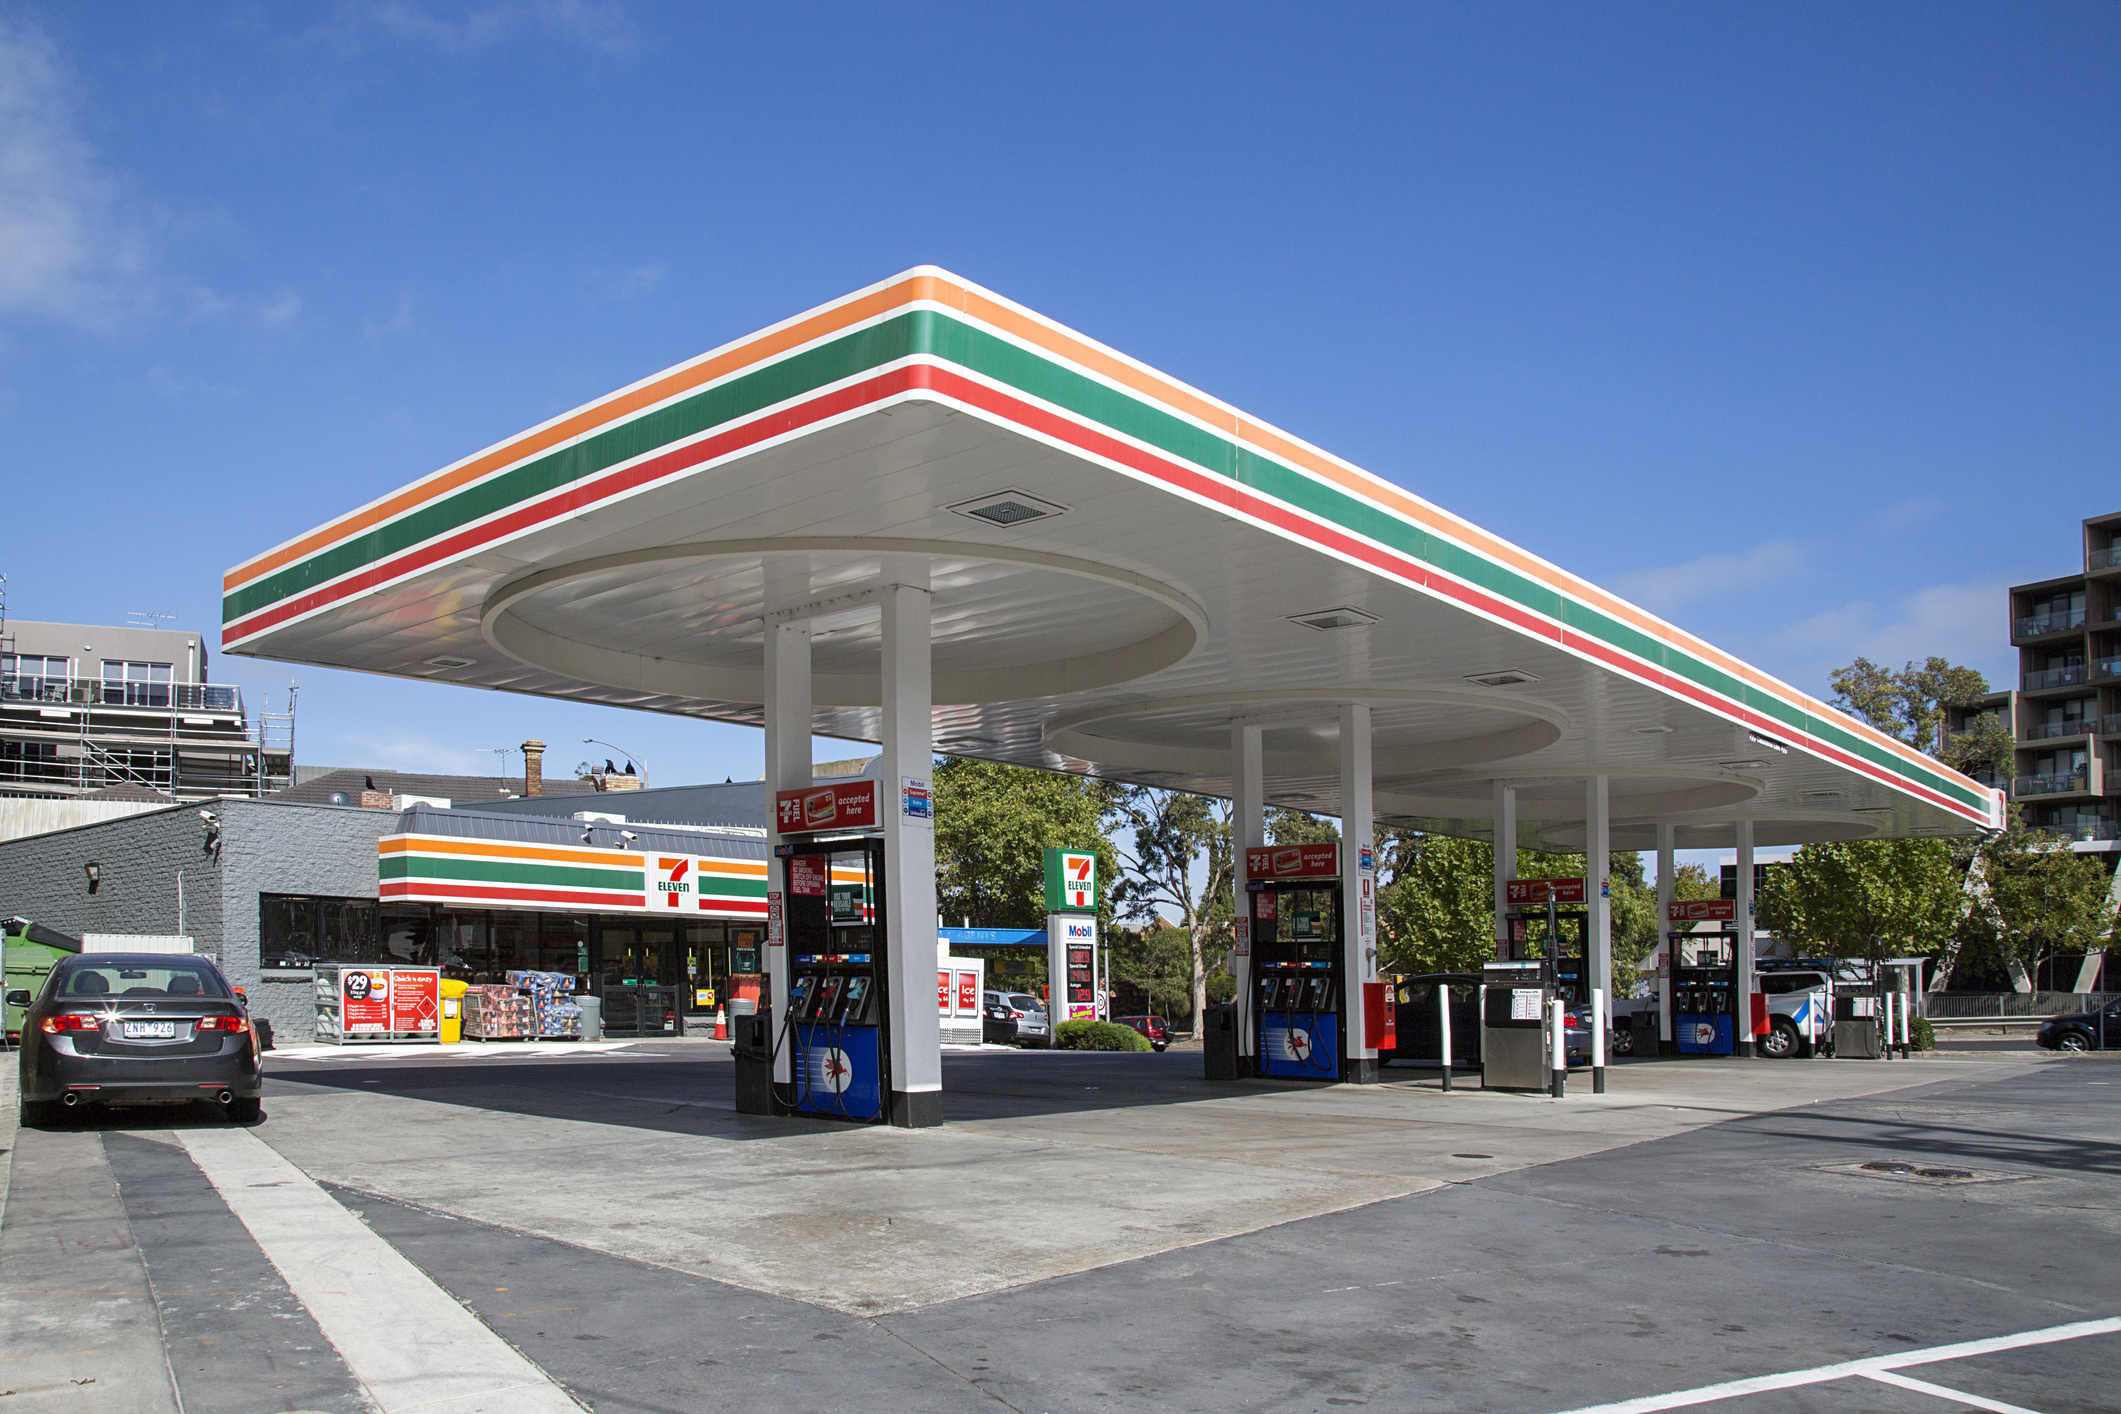 Exterior of a convenience store.